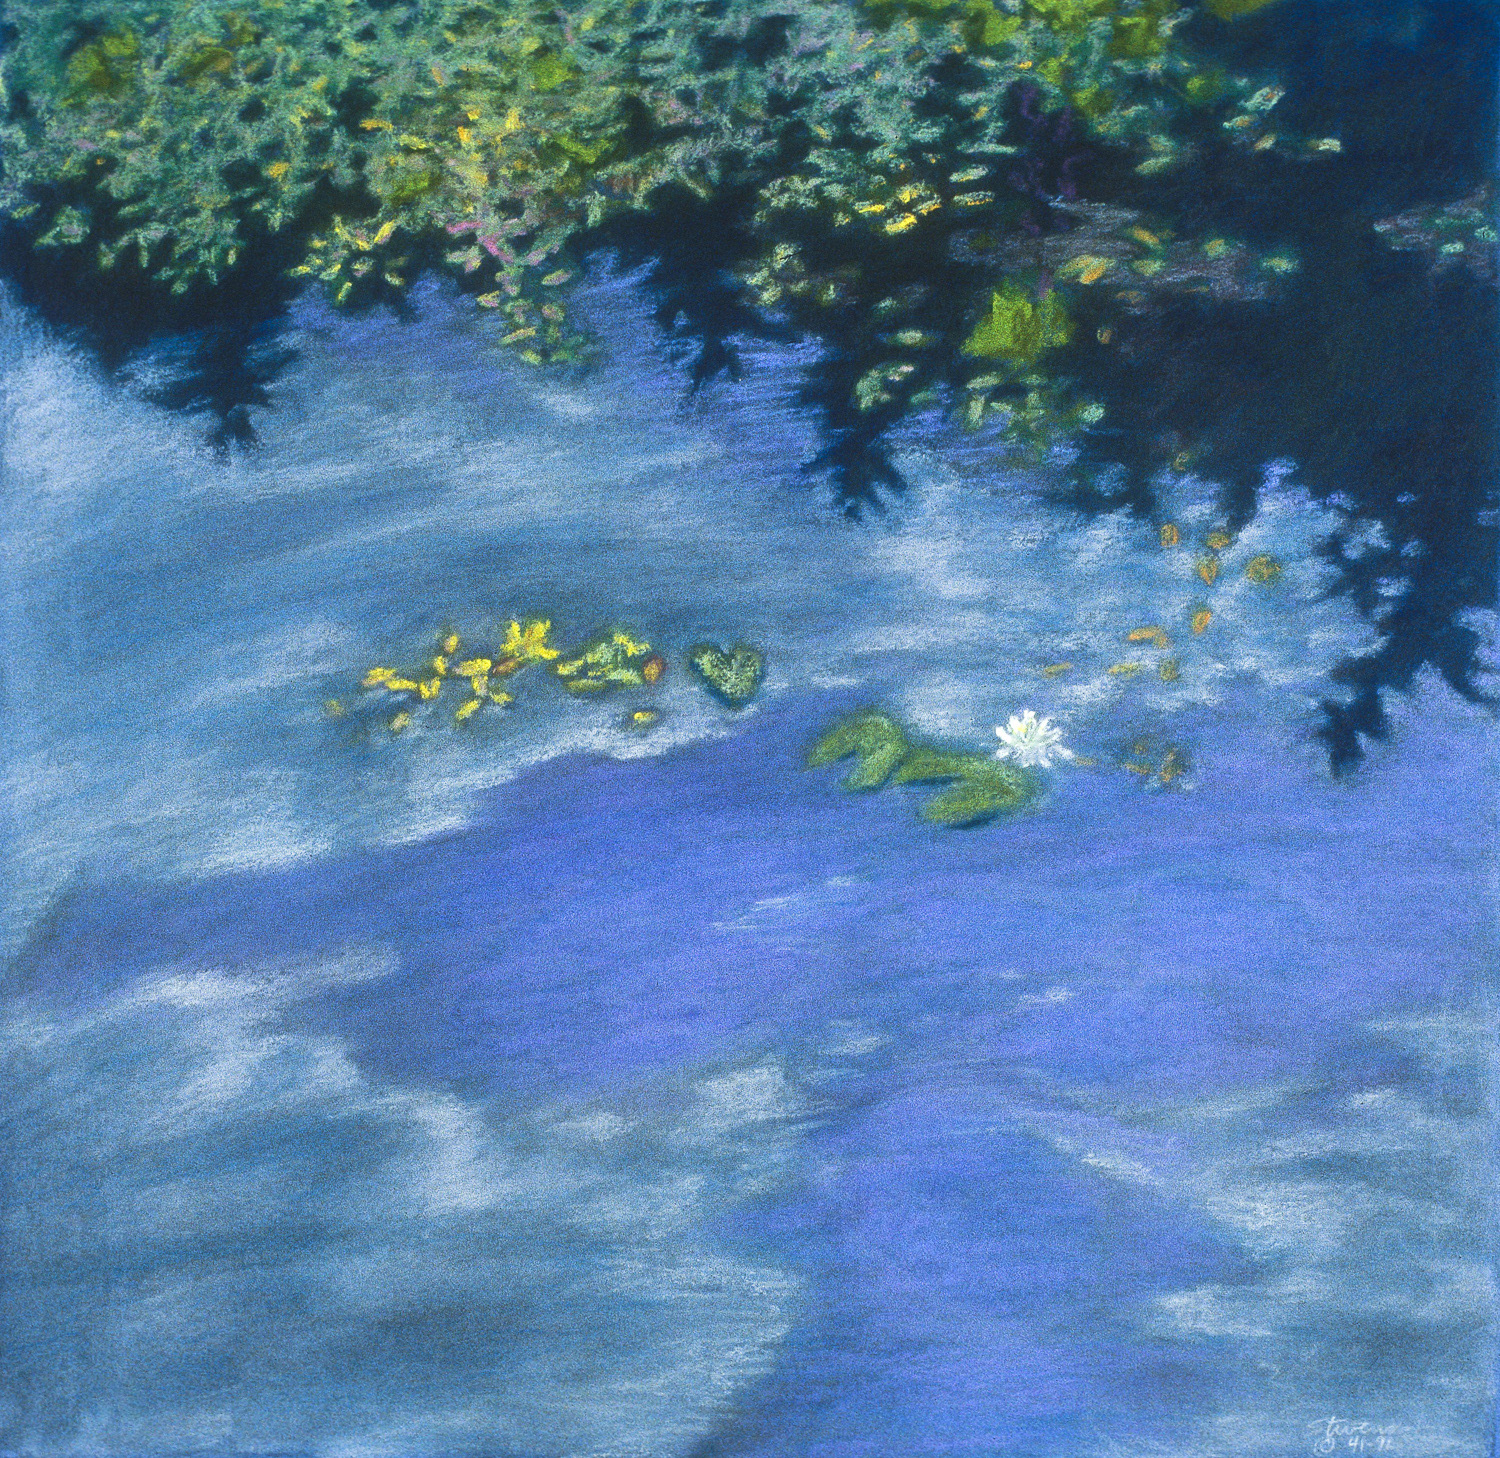 Pond Reflections  | pastel on paper | 16.5 x 17"